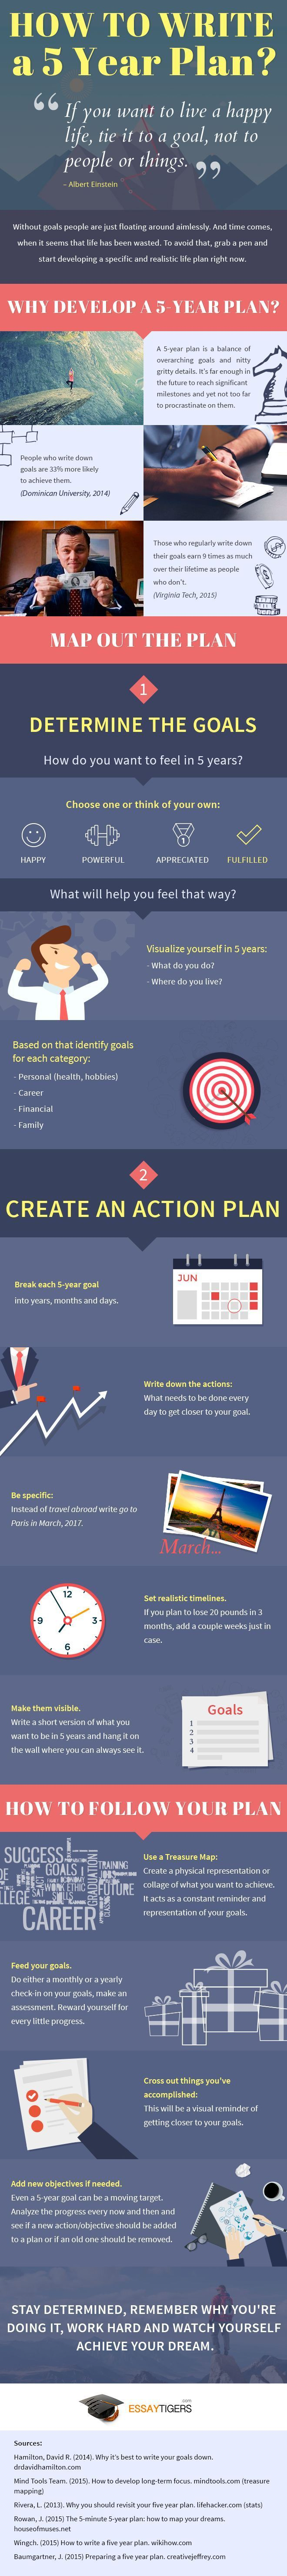 A life without goals is useless. It is like a race without a finish line. When you live without a goal, life seems to be slowly ticking away and the chances that you start feeling dull and depressed increase. Read more at http://www.liftupideas.com/how-to-write-five-year-plan/ #infographic - Learn how I made it to 100K in one months with e-commerce!